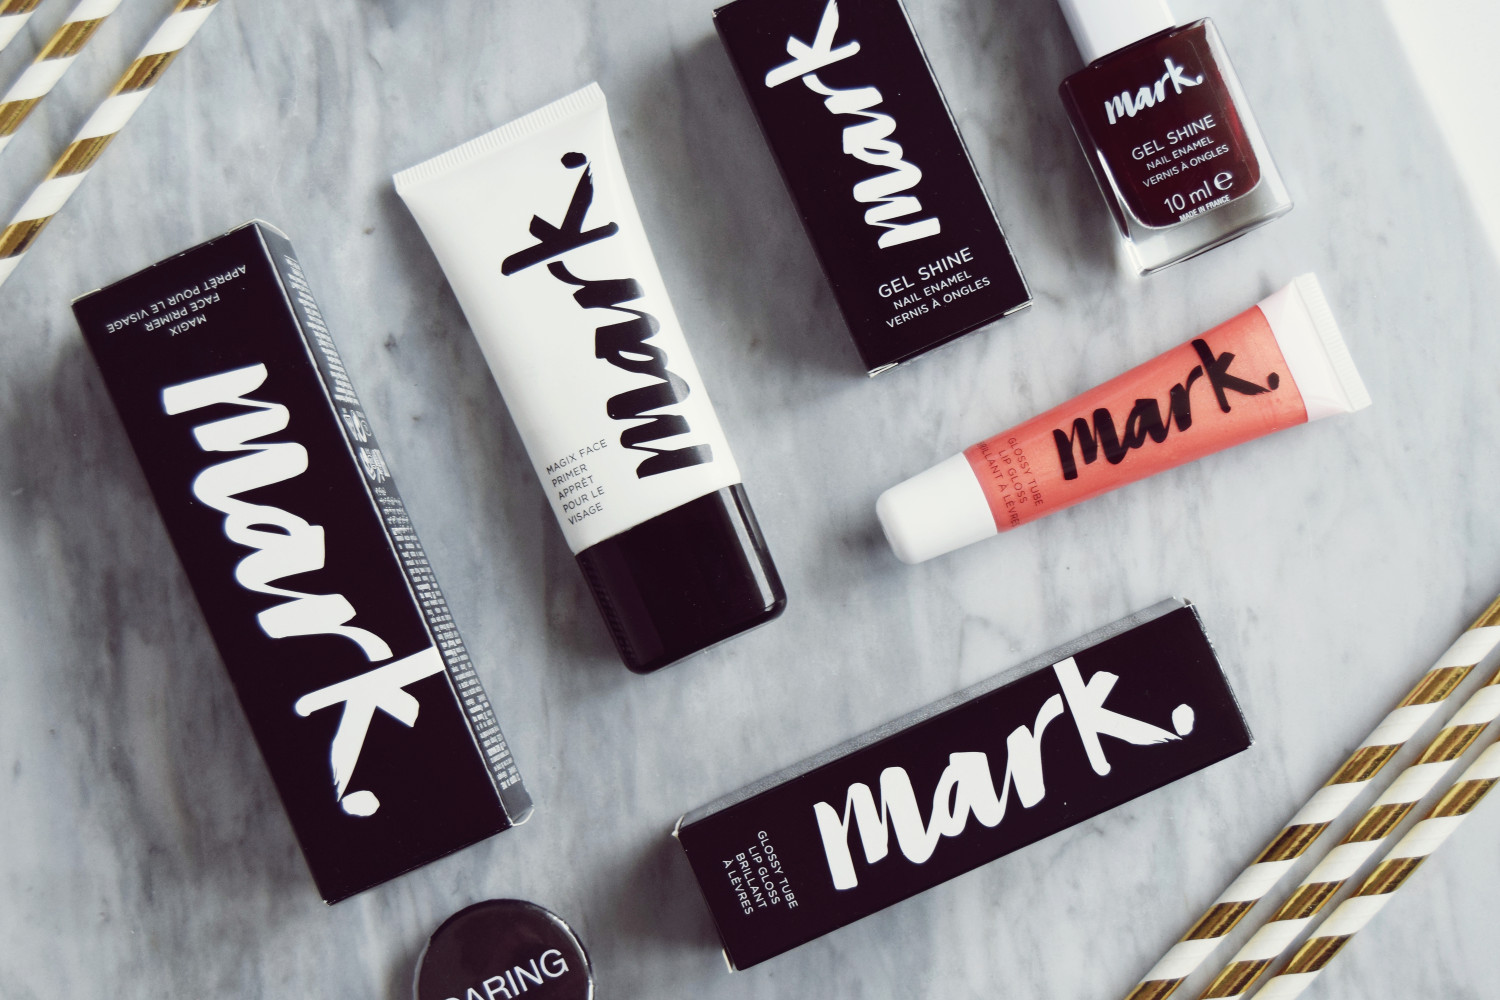 Avon Mark make-up line